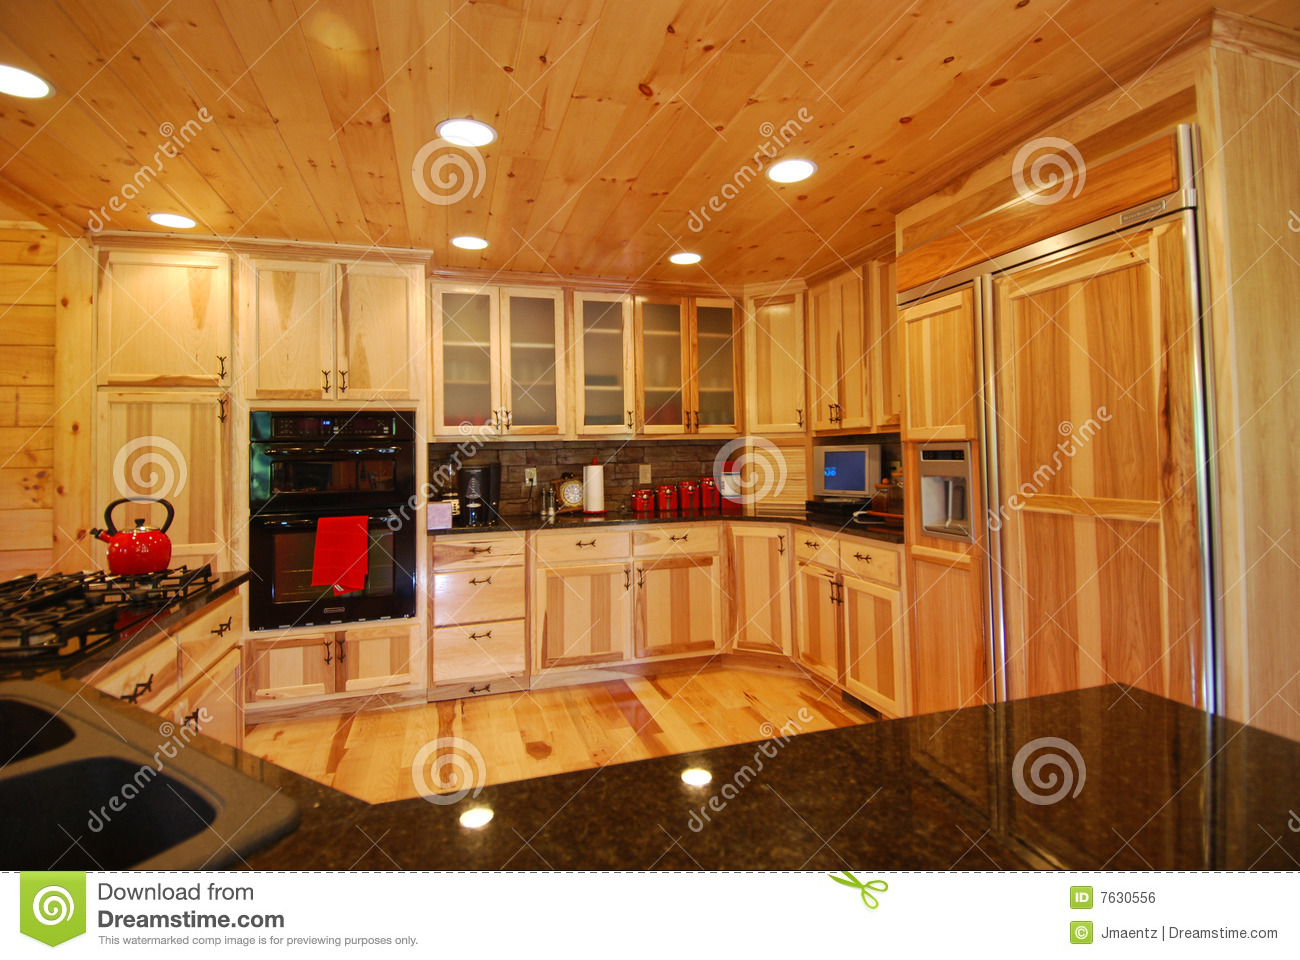 Log house kitchen interior royalty free stock image for Beautiful houses interior kitchen